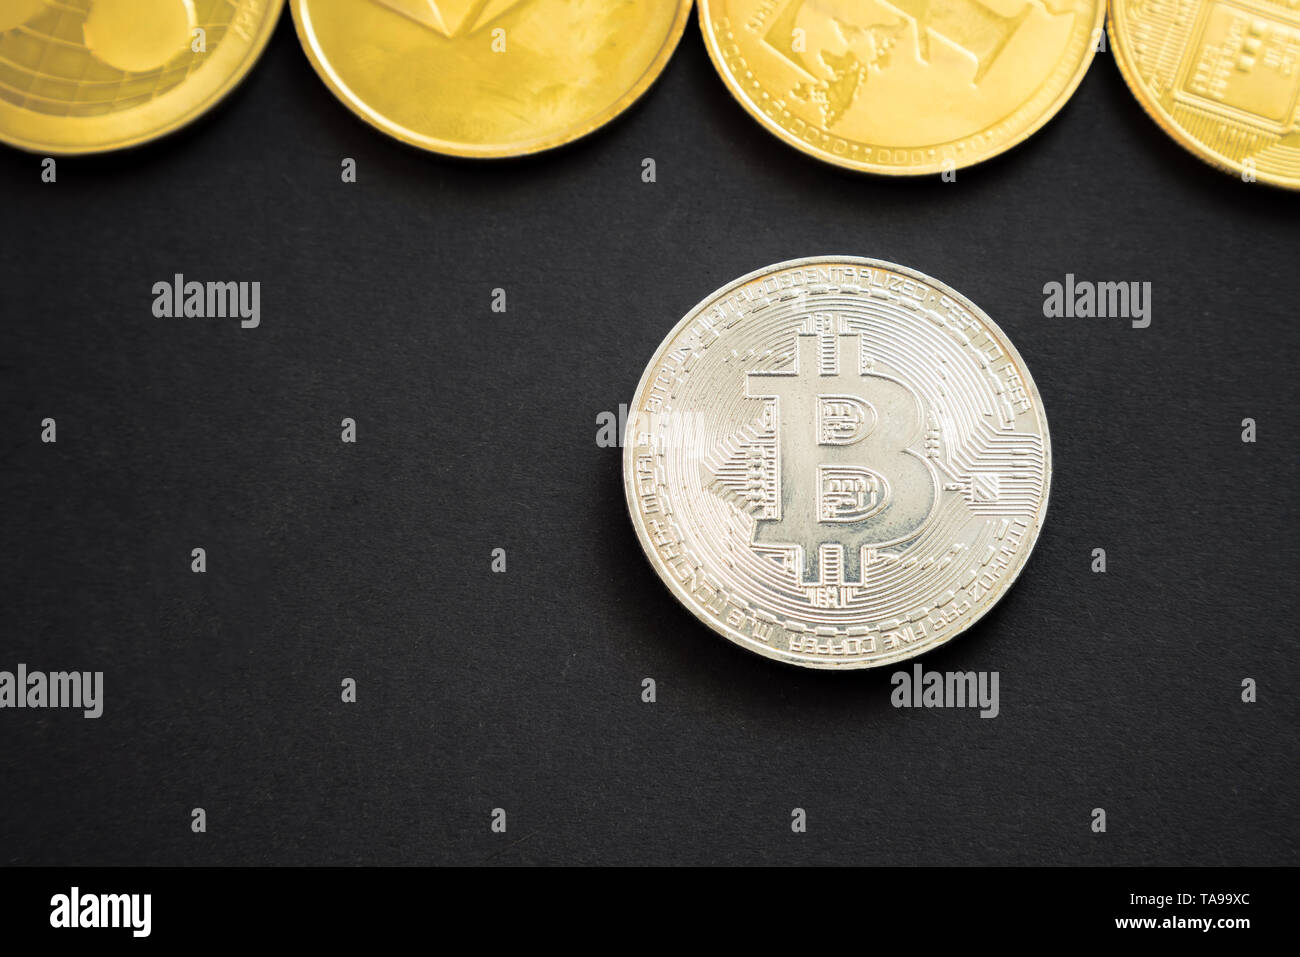 Silver bitcoin crypto currency coin next to others: Litecoin, Ripple, Monerd, Ethereum coin on black background. Digital currency, block chain market - Stock Image